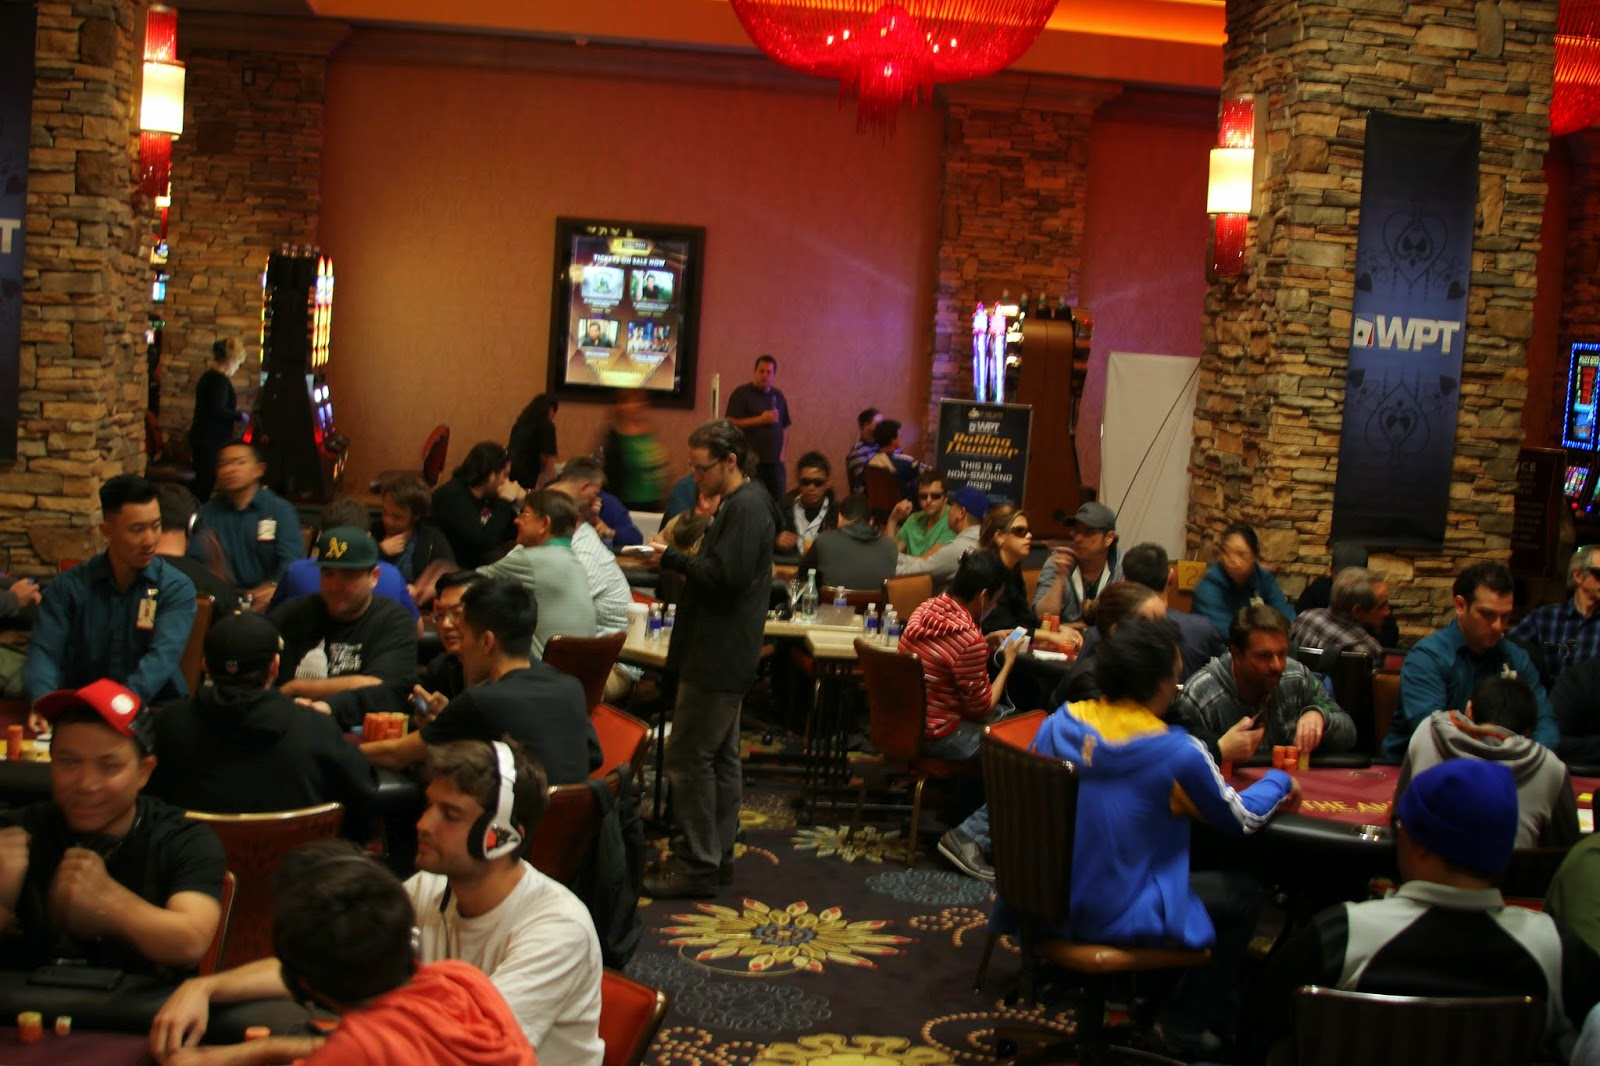 Thunder valley casino poker room wiki the-casino-guide tournamentpoker